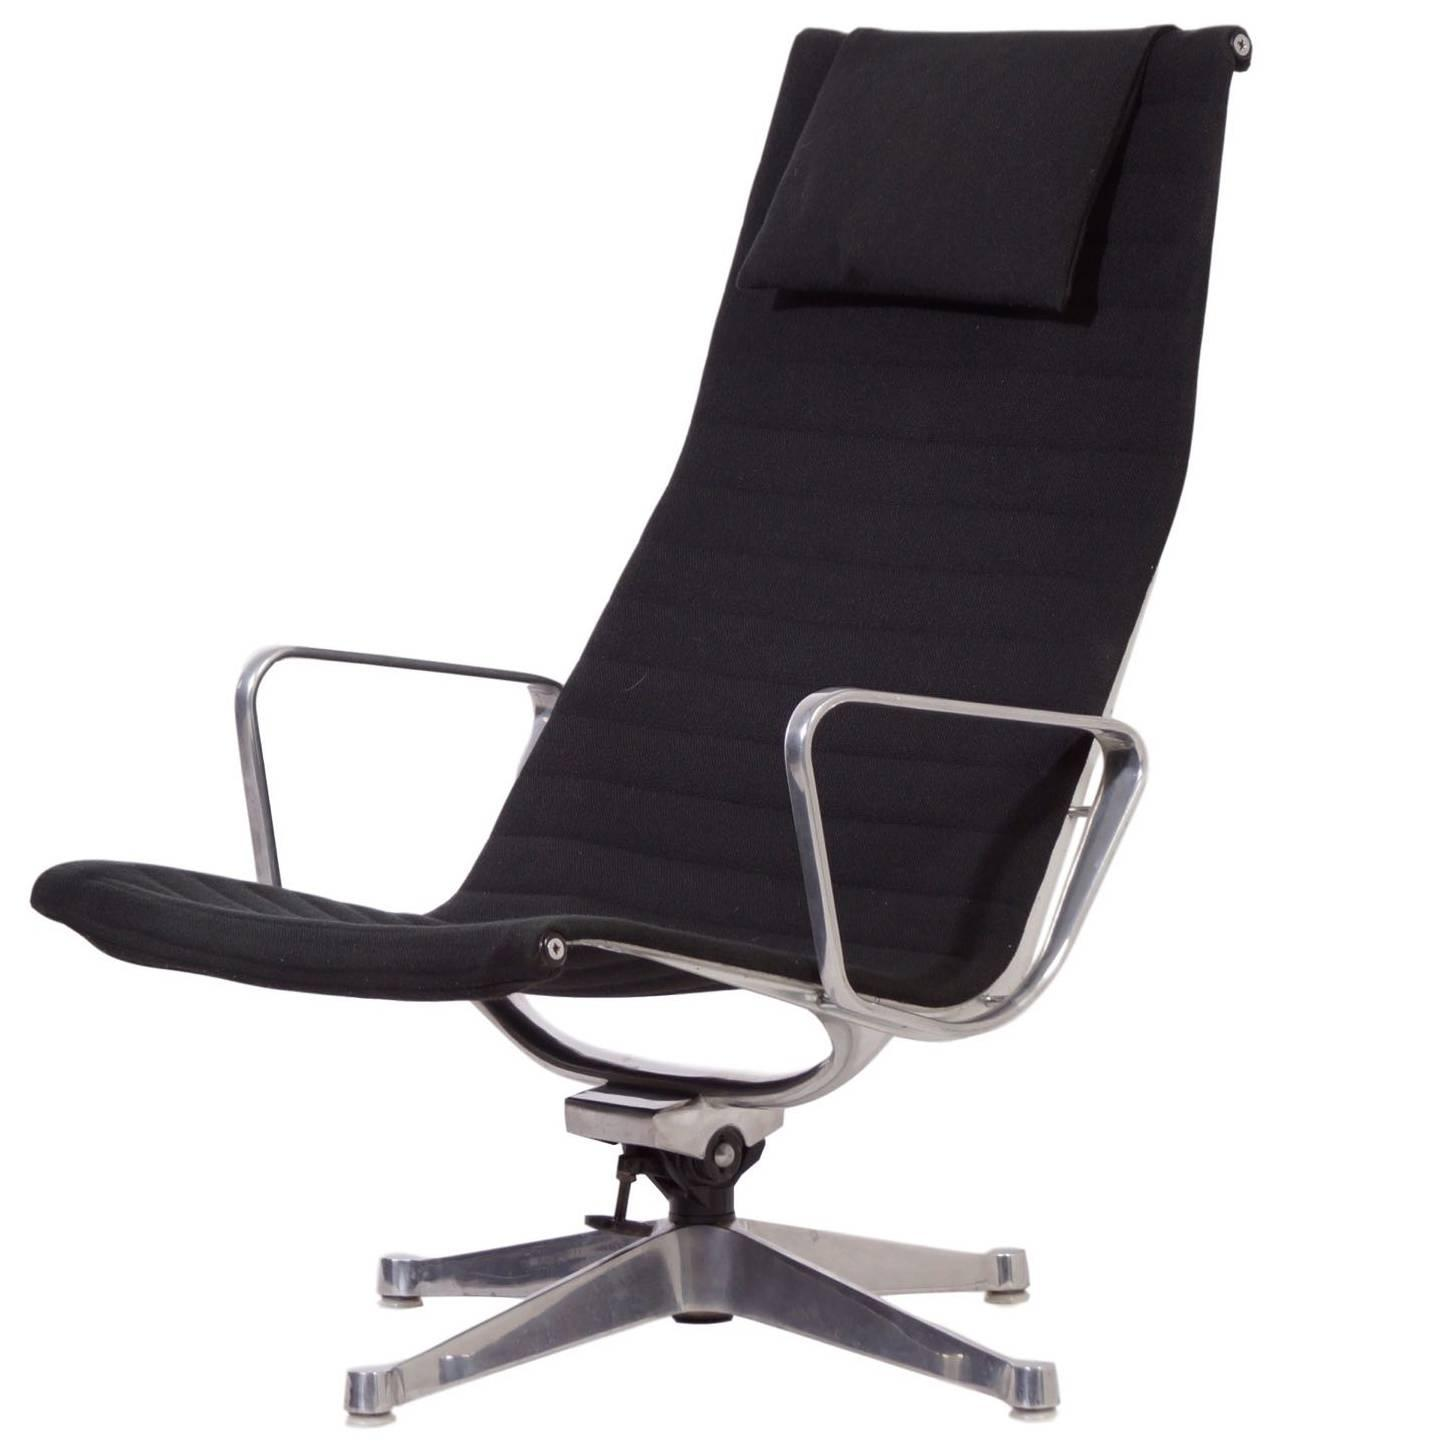 Ea124 lounge chair by charles and ray eames for herman miller 1958 for sale - Fauteuil herman miller ...